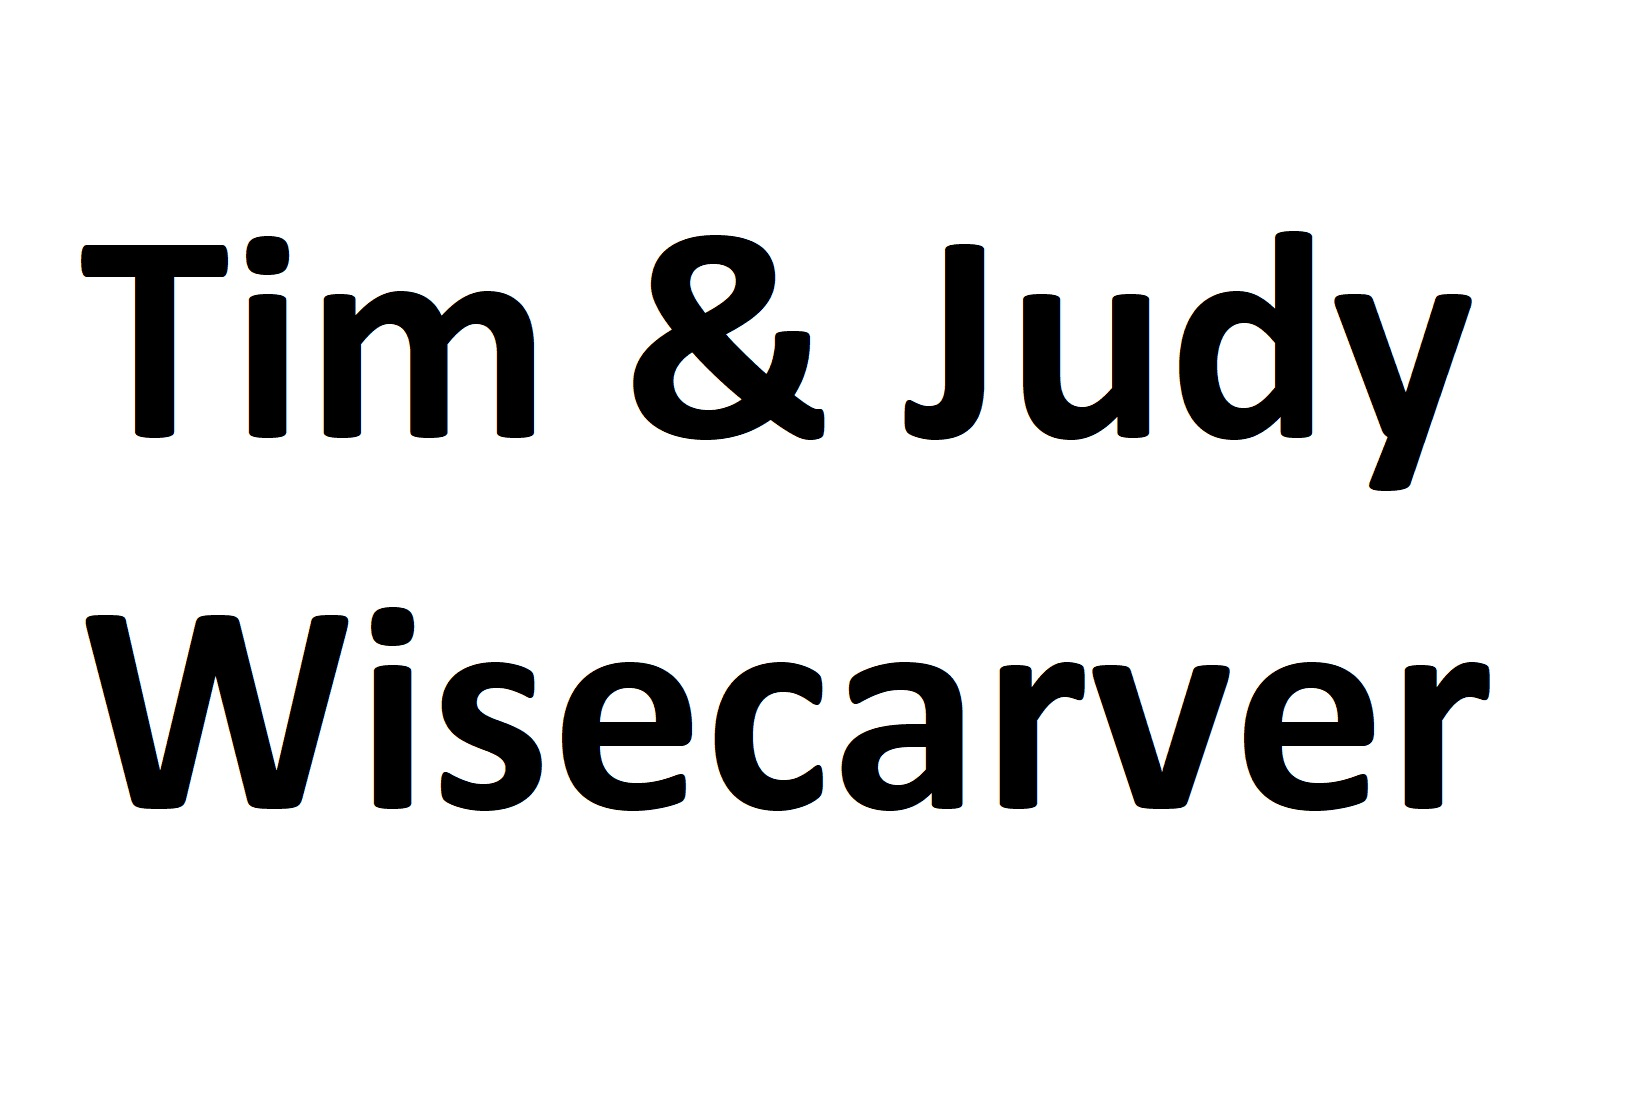 Tim and judy wisecarver